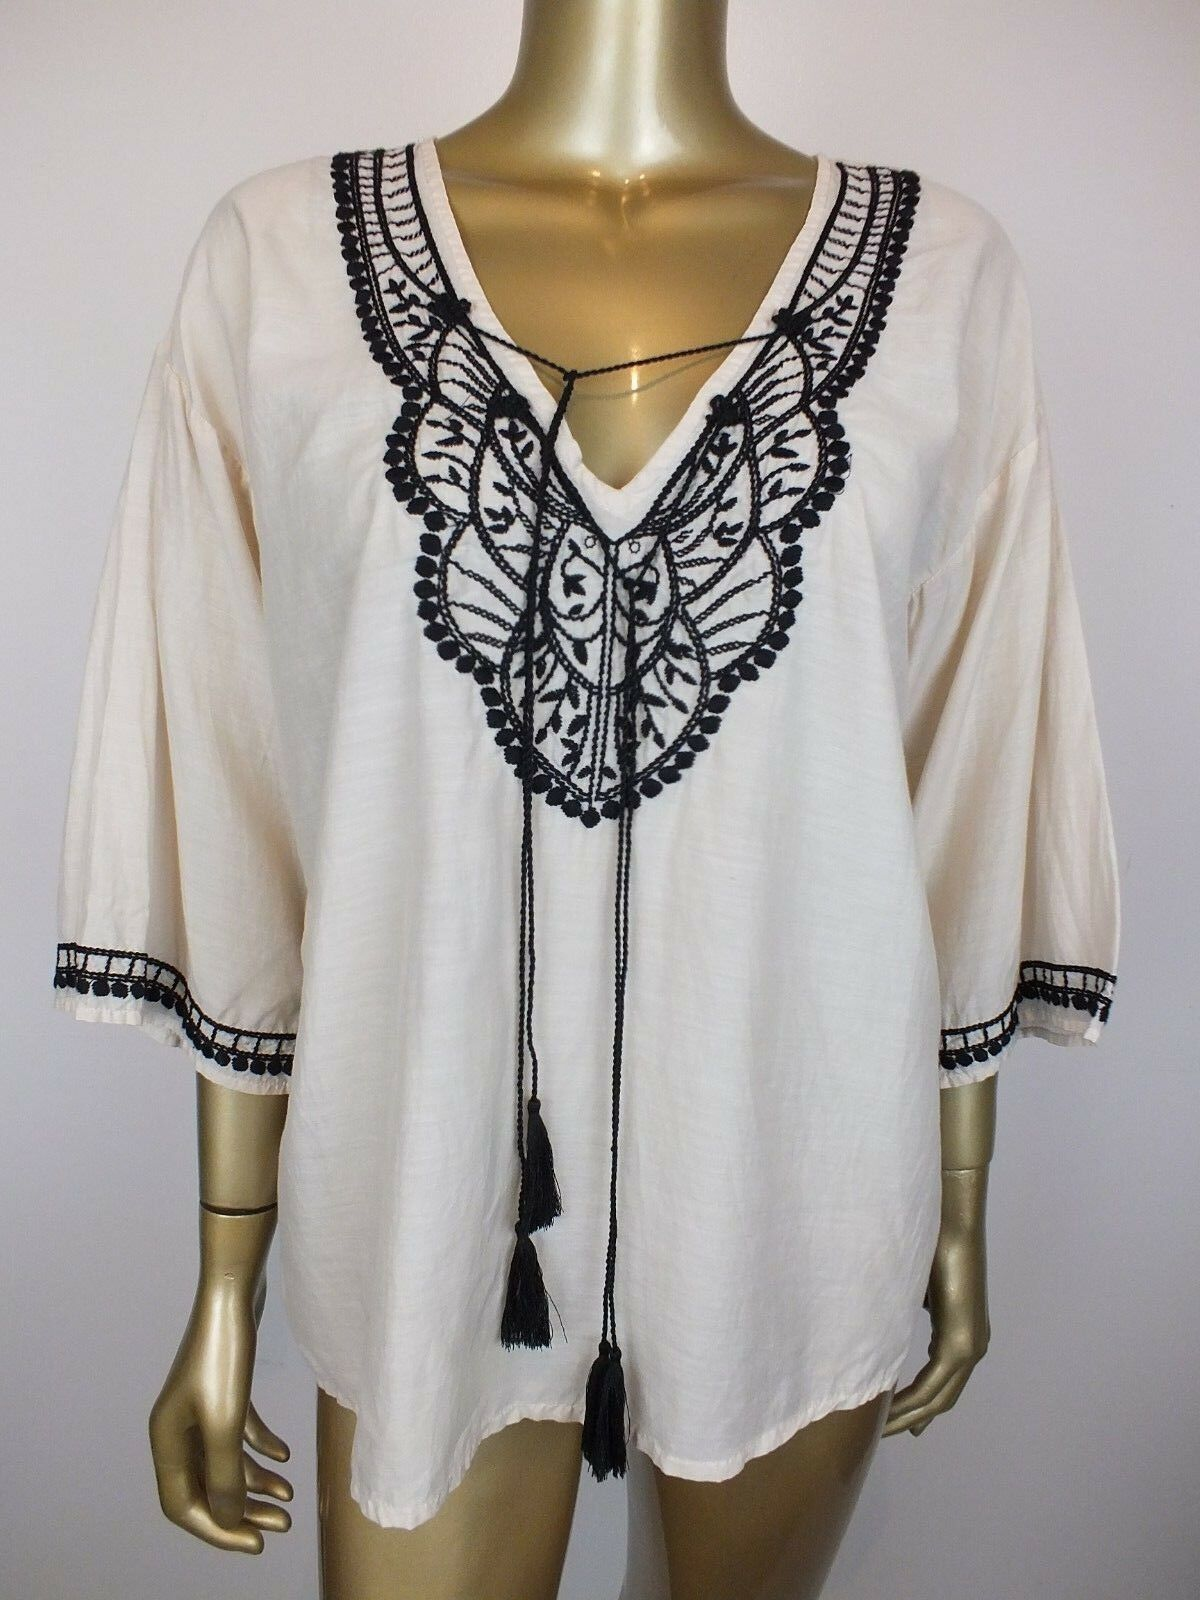 COUNTRY ROAD BLOUSE KAFTAN TOP TUNIC SHIRT BLOUSE - BOHO  EMBROIDERED - S